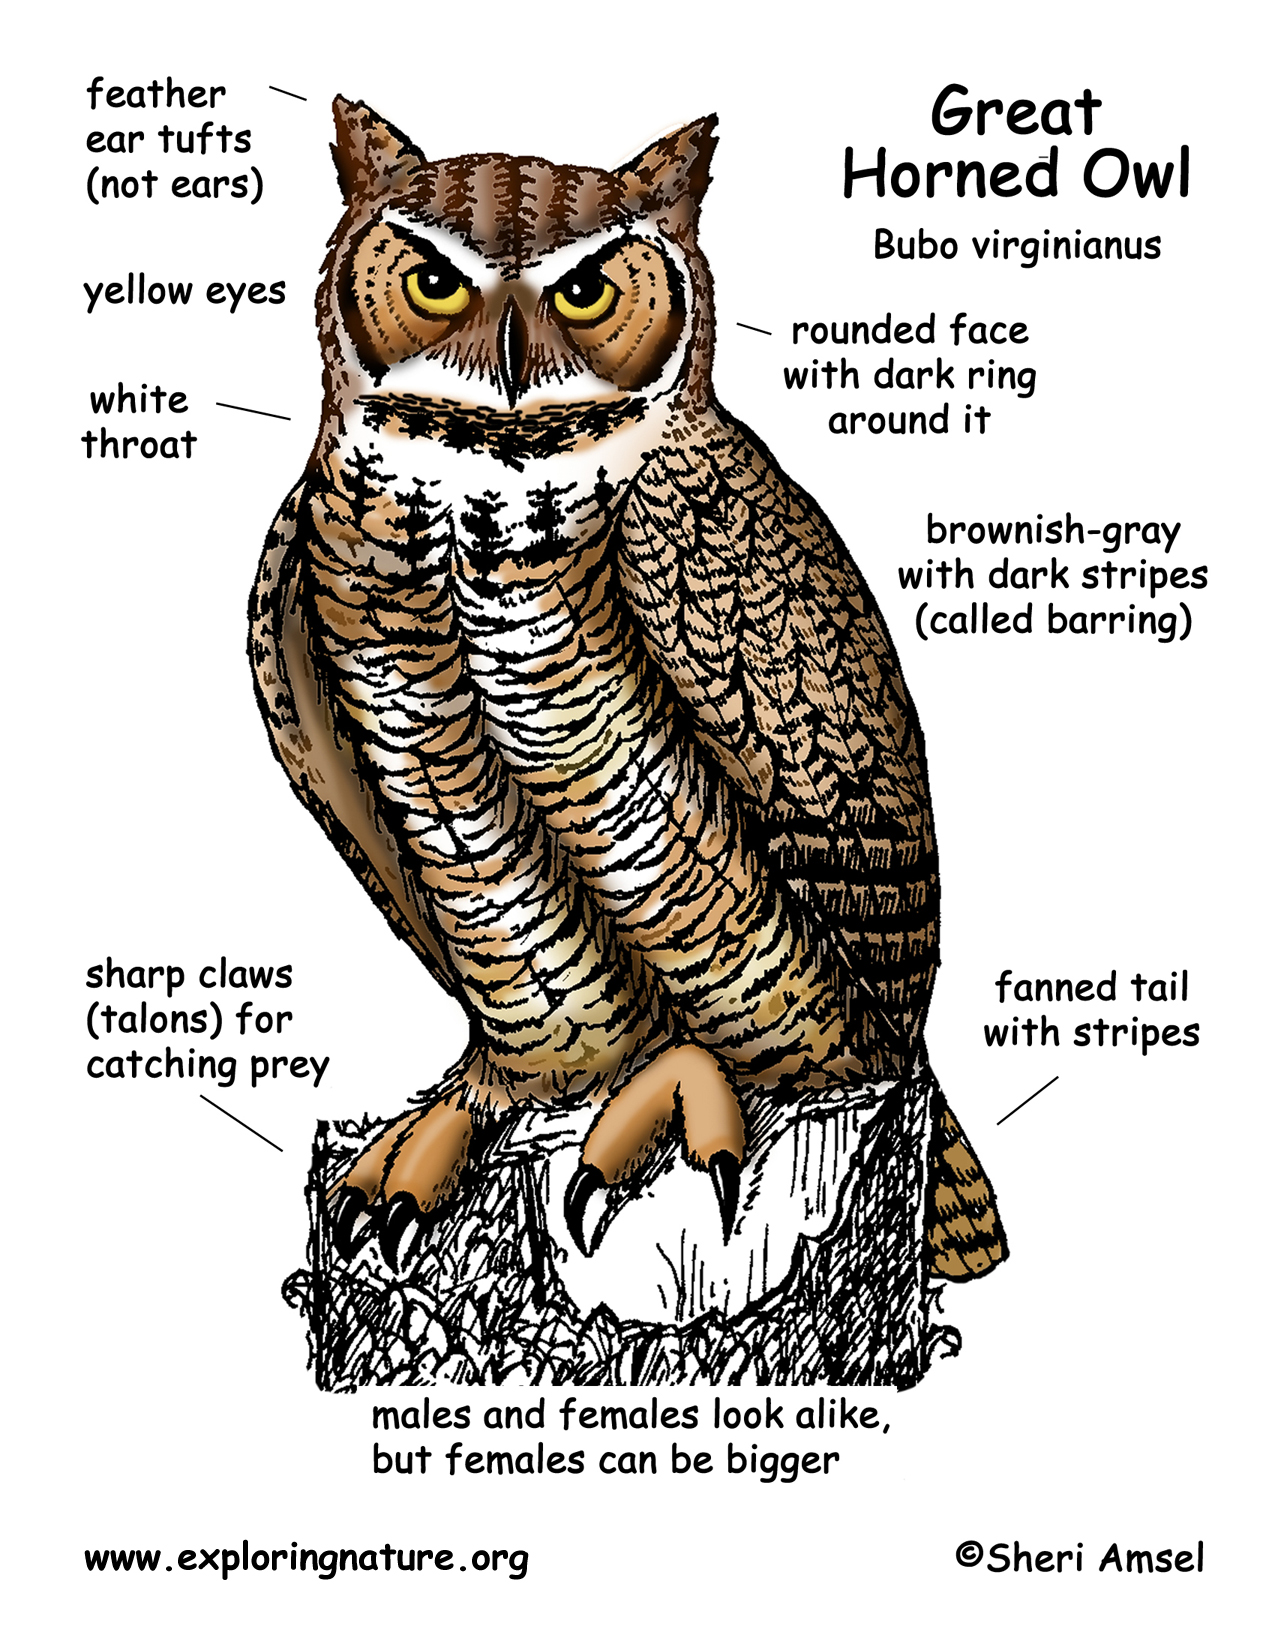 Great Horned Owl Anatomy